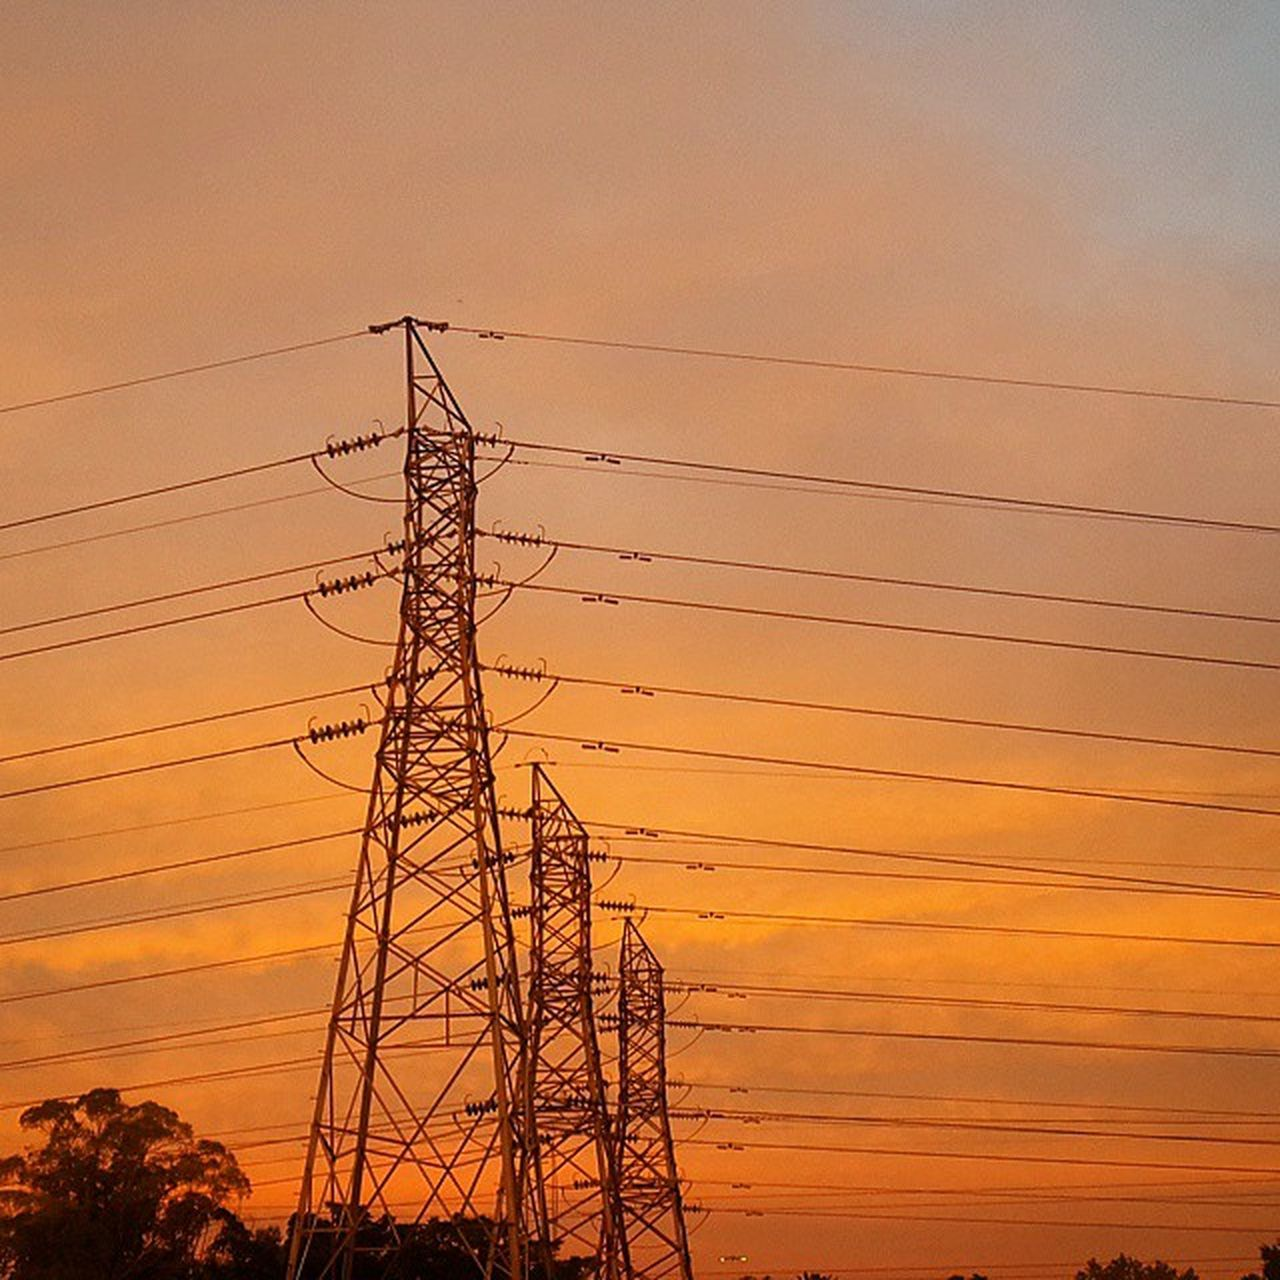 sunset, cable, electricity pylon, electricity, connection, power line, power supply, fuel and power generation, orange color, silhouette, no people, technology, sky, landscape, nature, low angle view, scenics, outdoors, beauty in nature